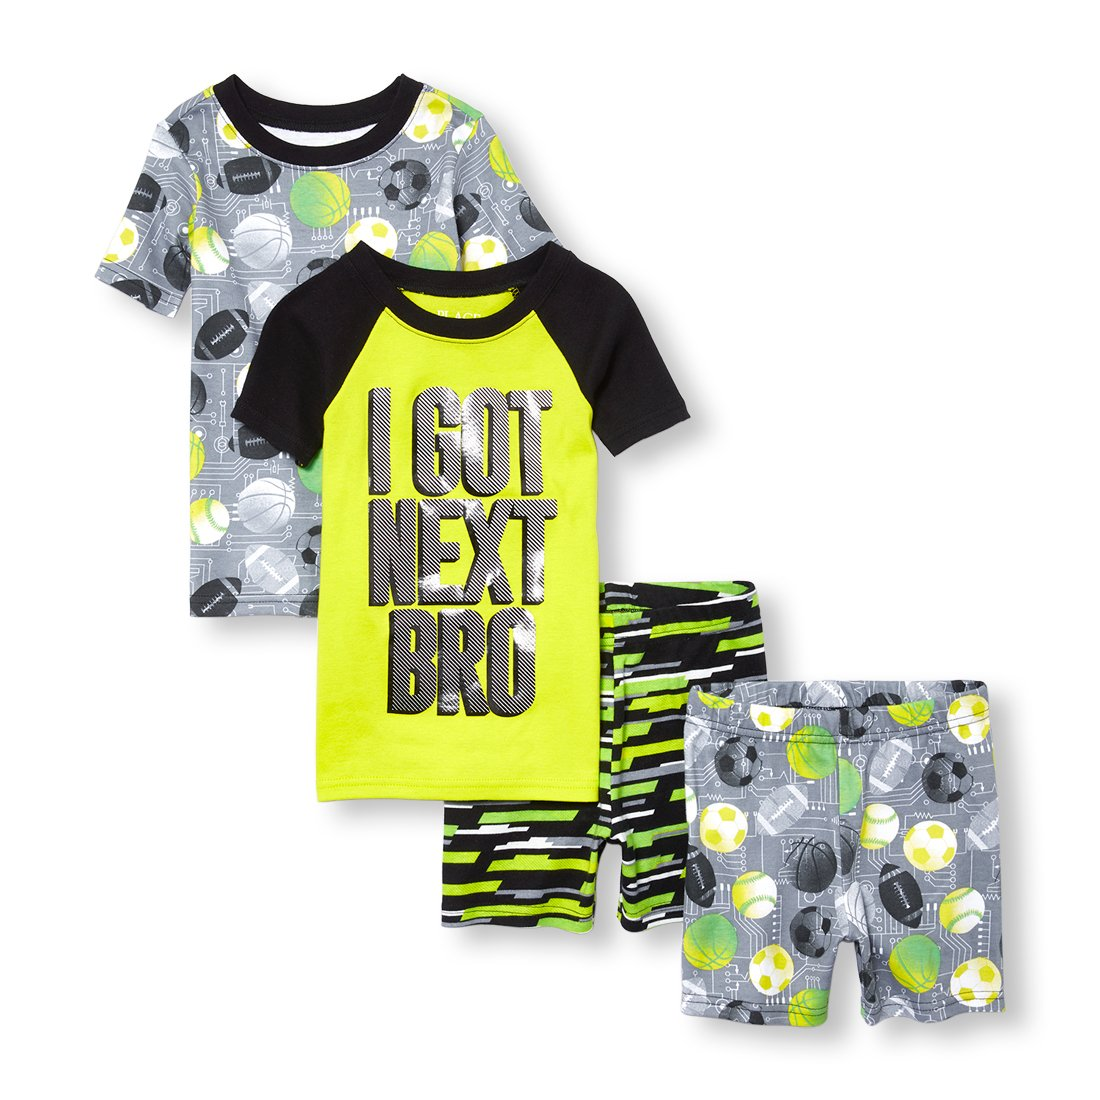 The Children's Place Big Boys' Top and Shorts 4 Piece Pajama Set